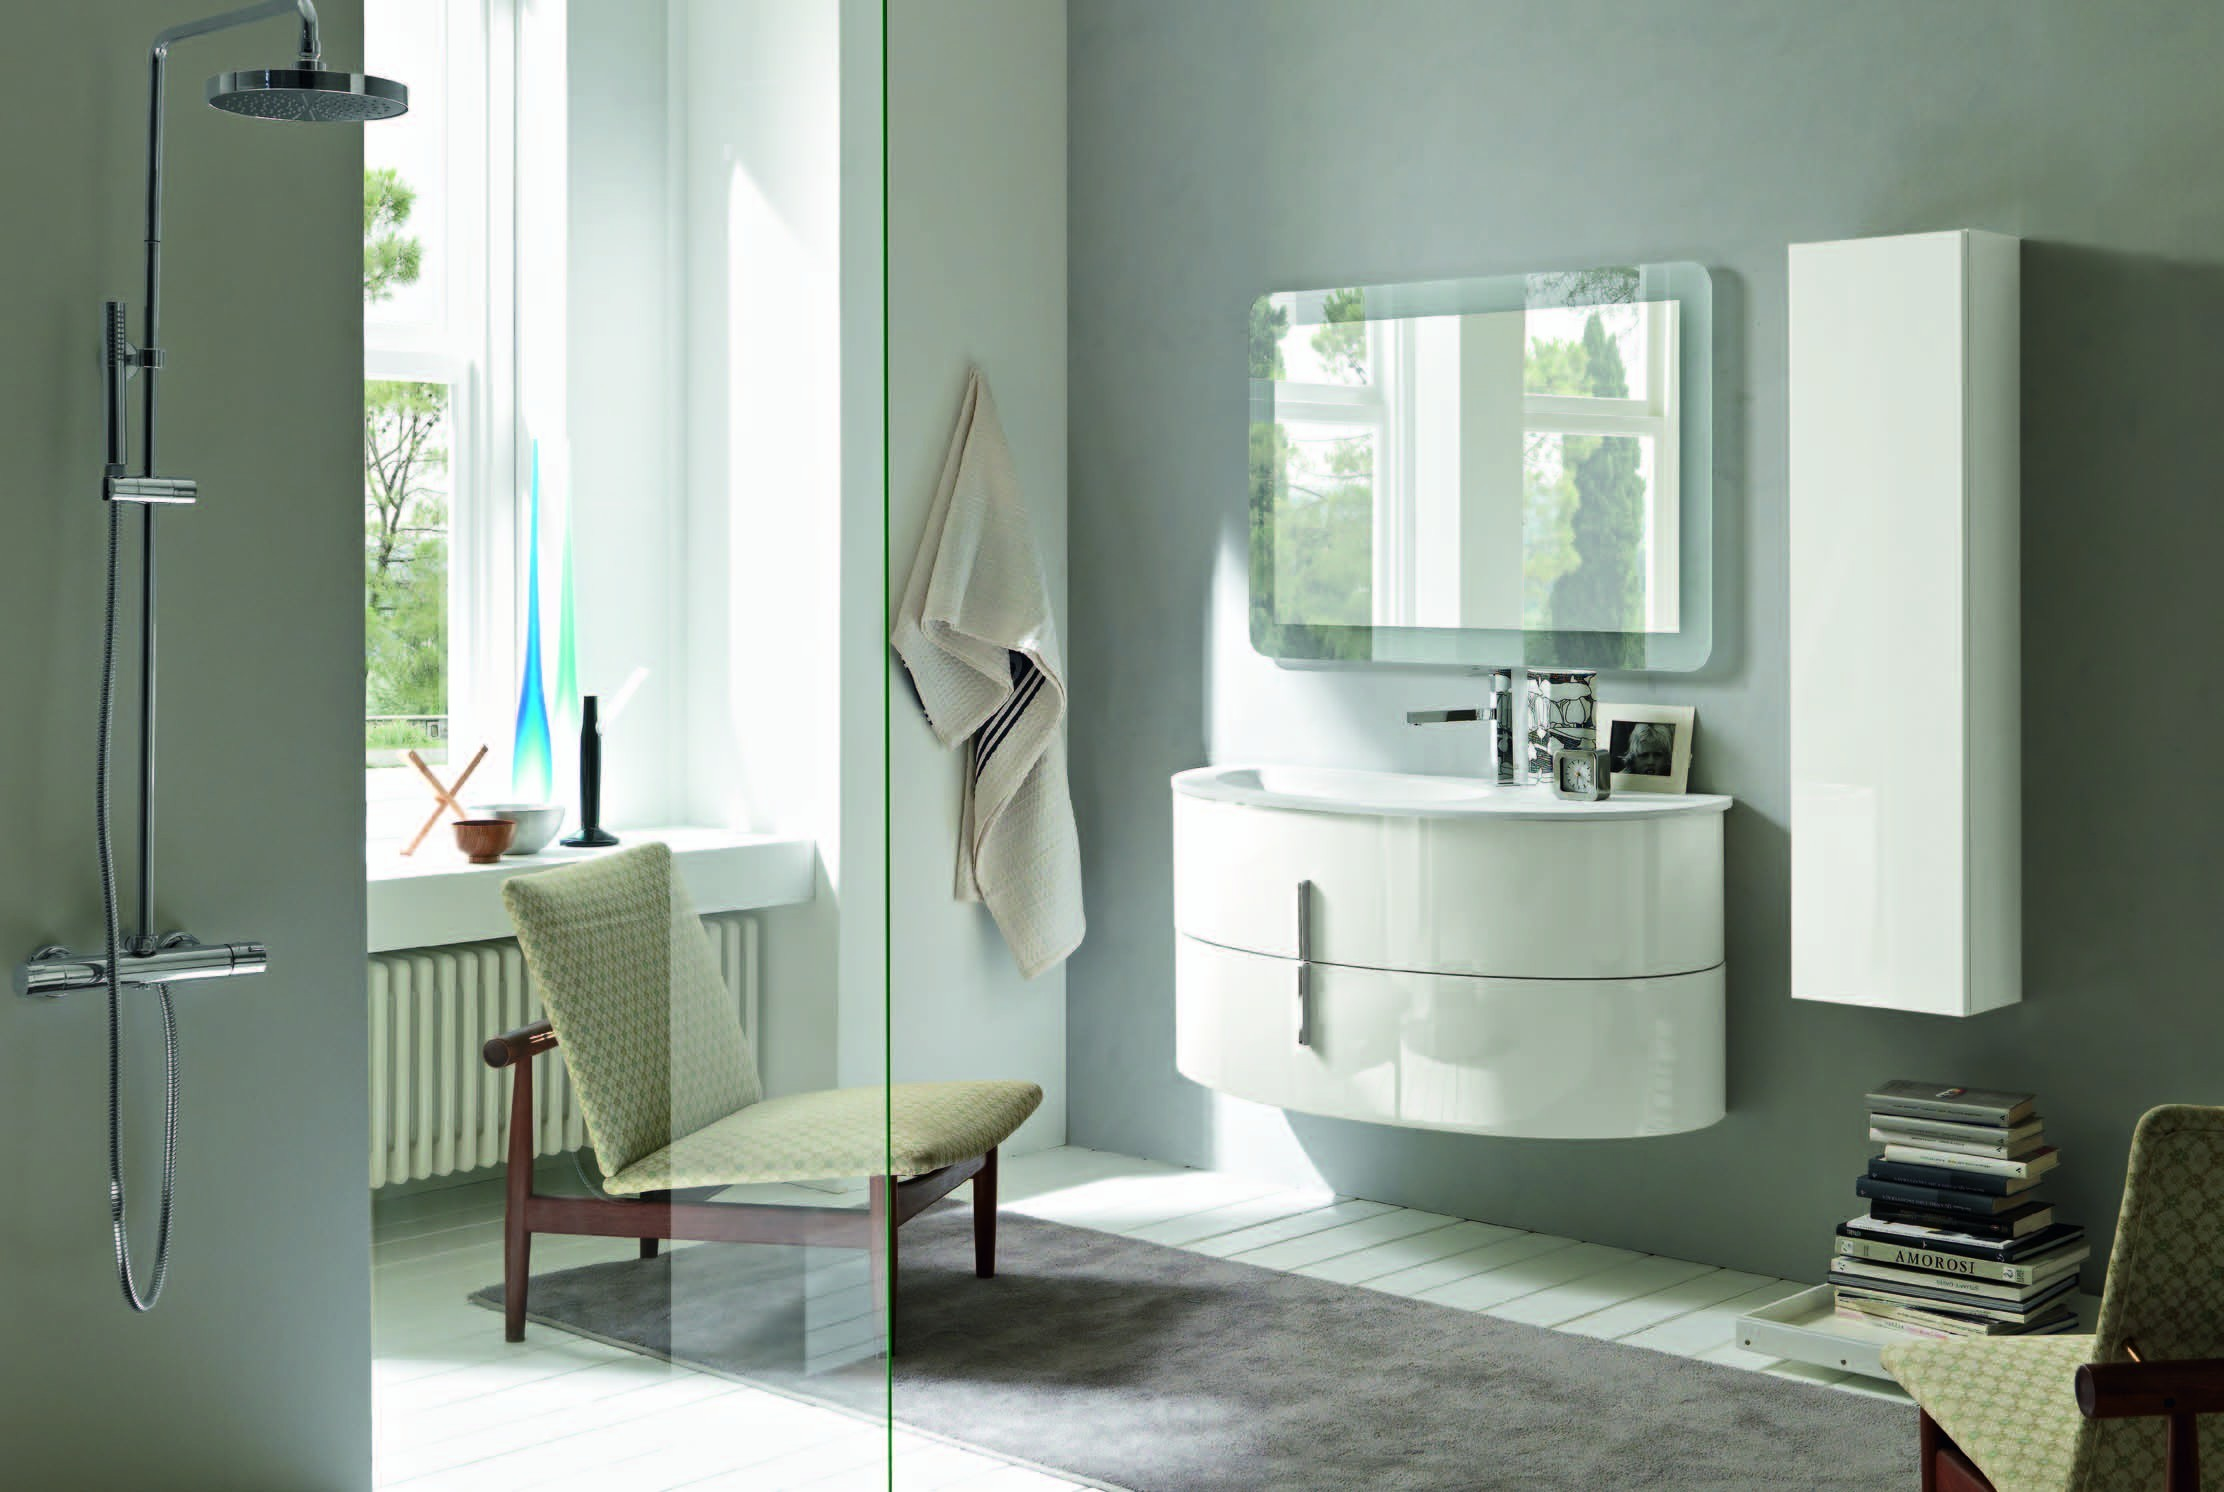 mobile bagno design ovale con base lavello e colonna sospesi finitura